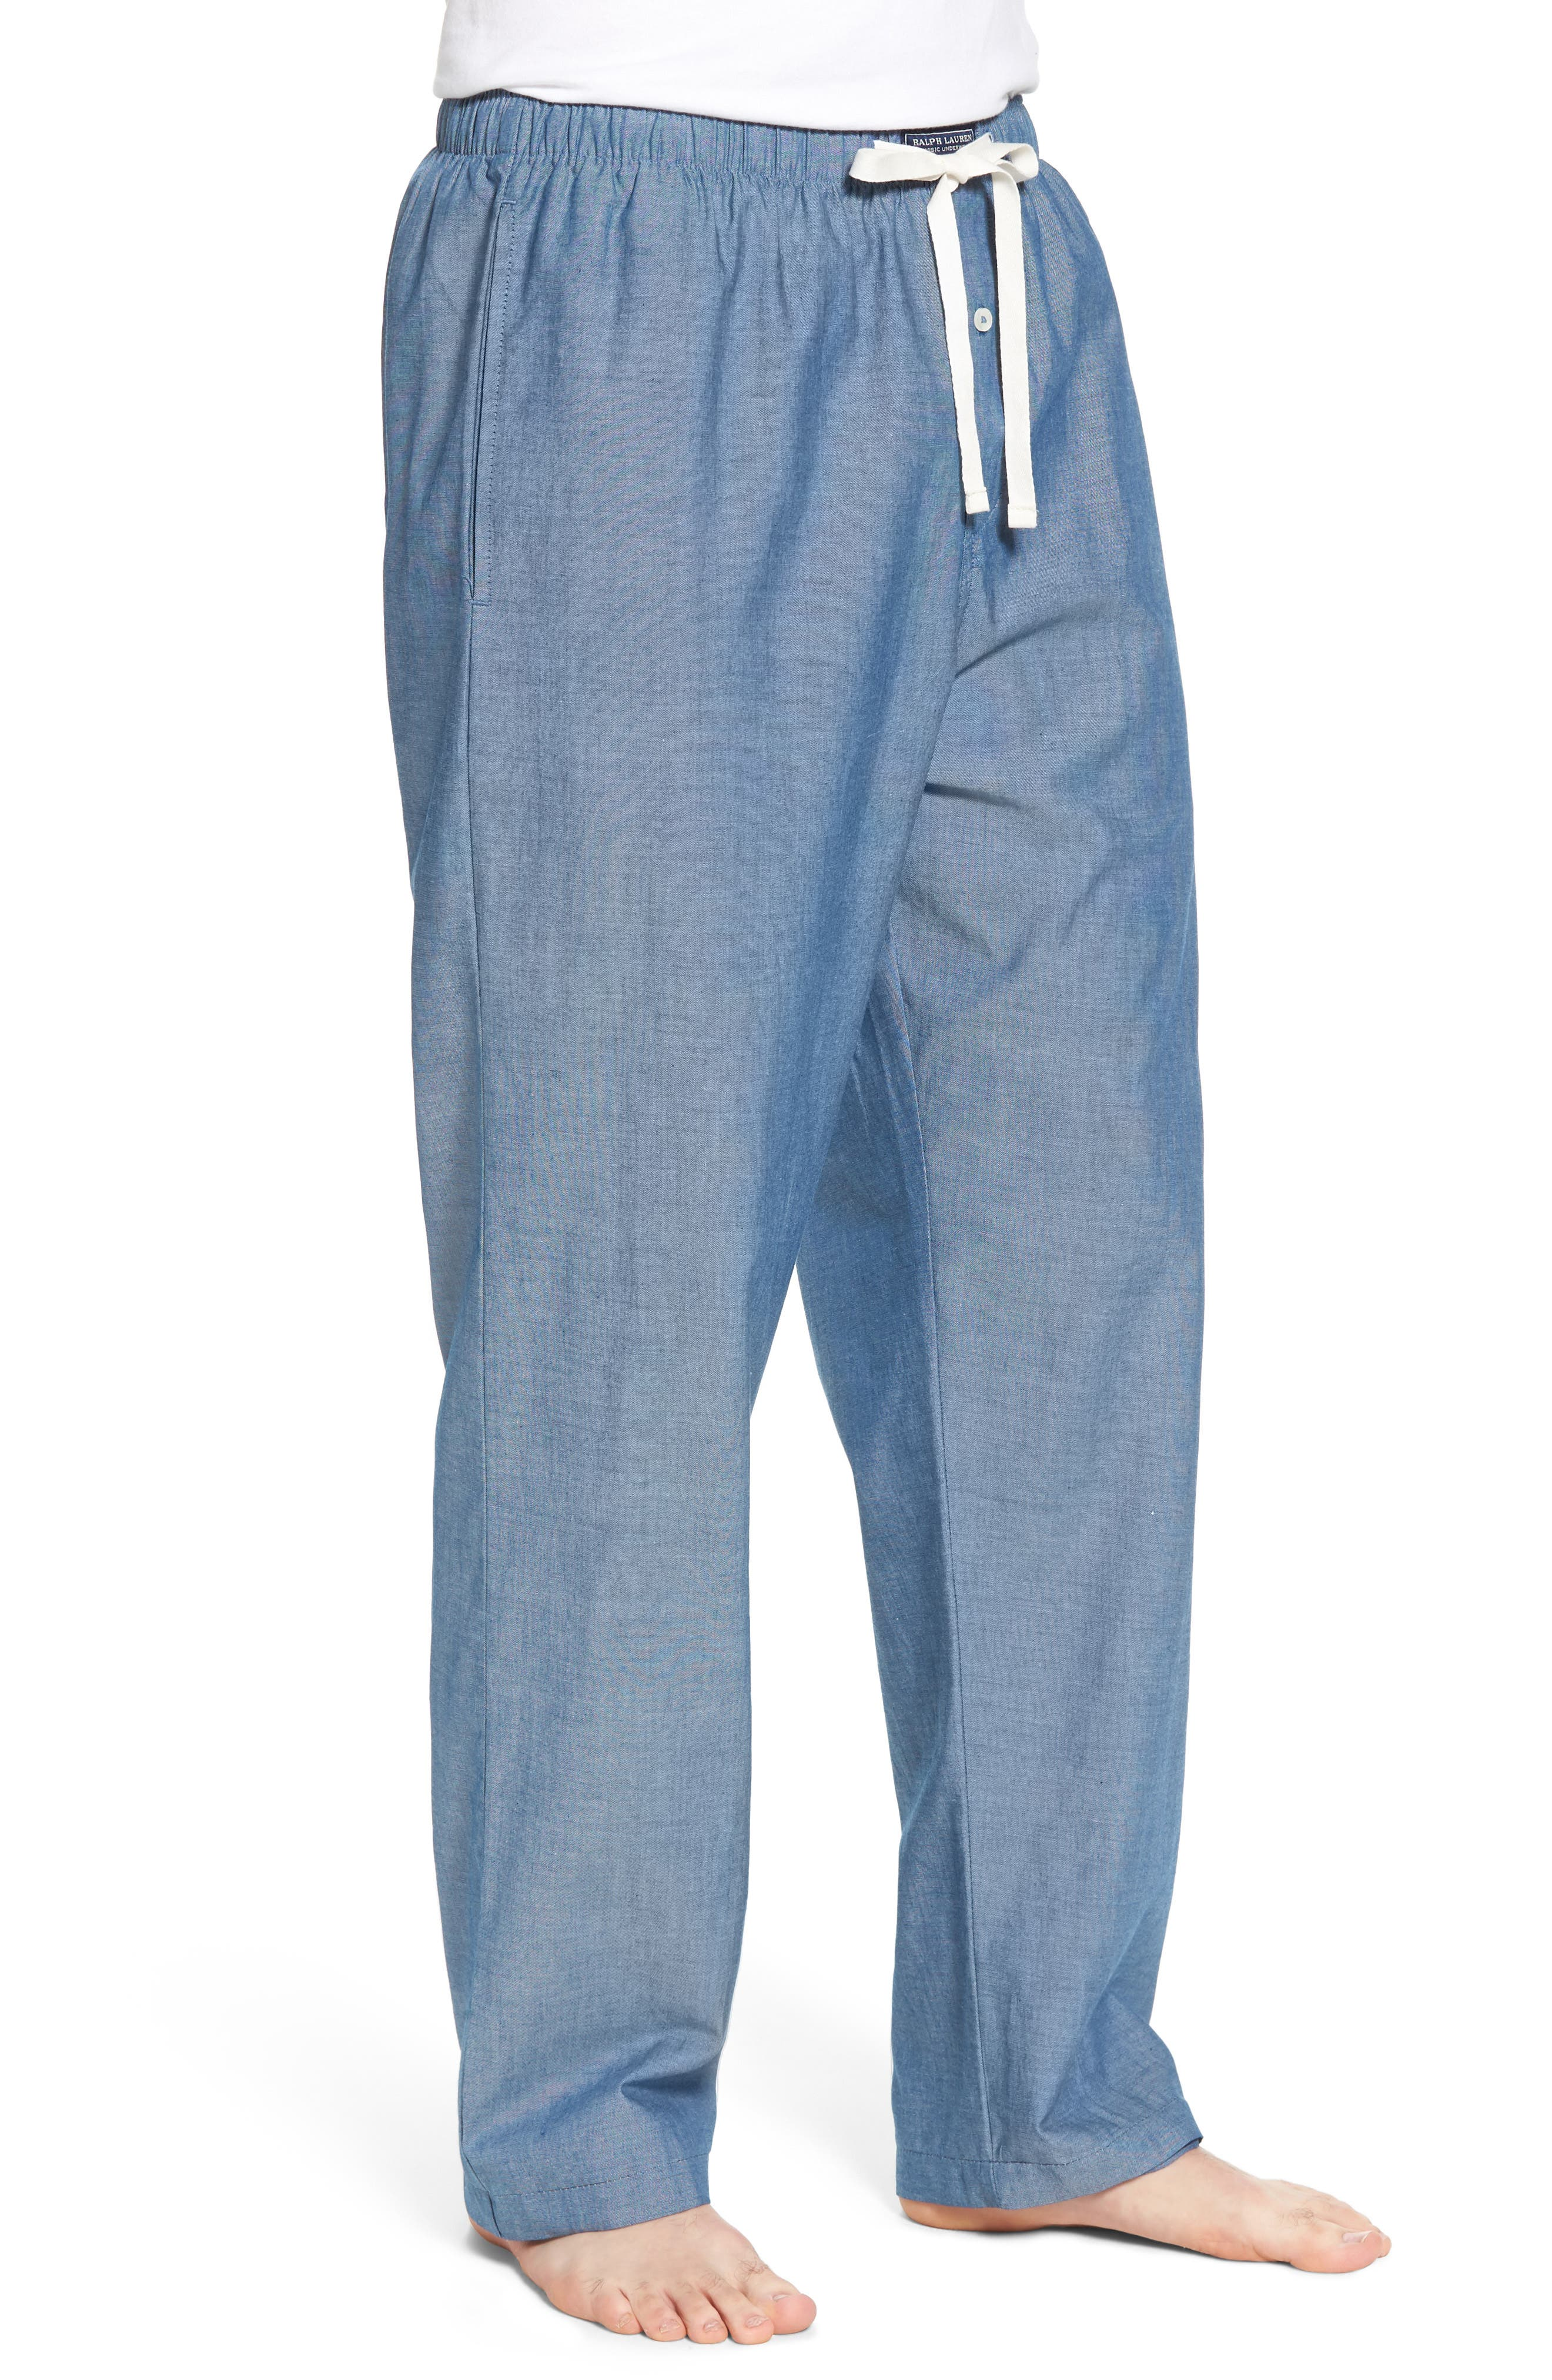 Chambray Woven Lounge Pants,                             Alternate thumbnail 3, color,                             424